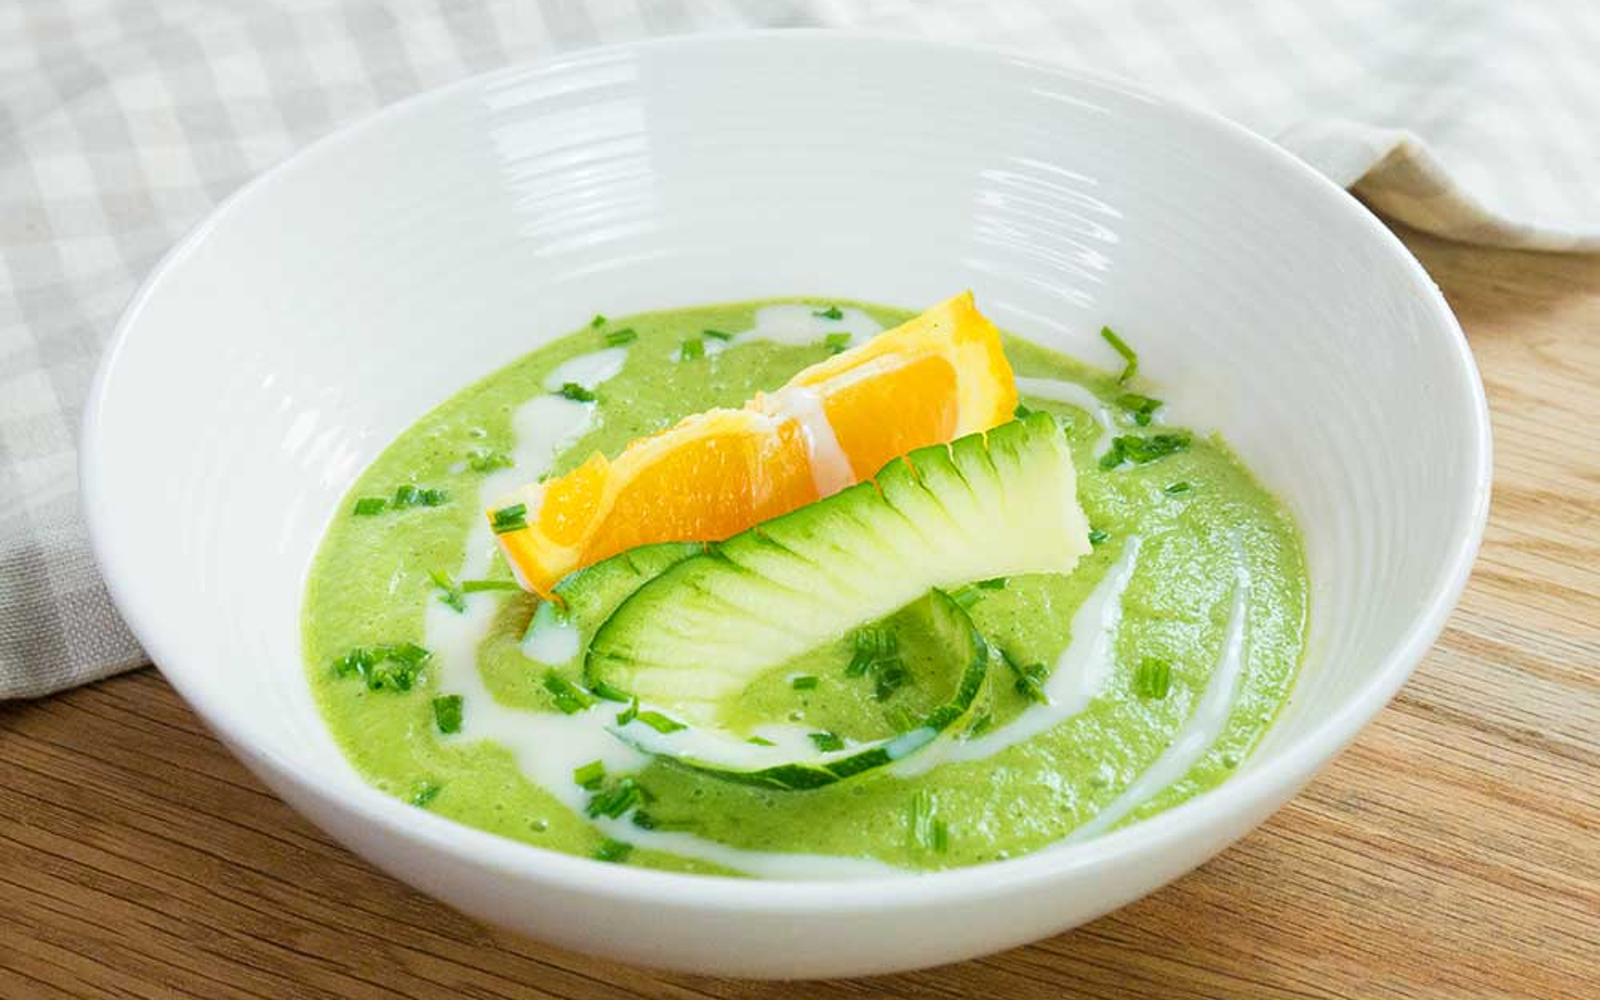 Chilled Zucchini, Orange, and Basil Soup